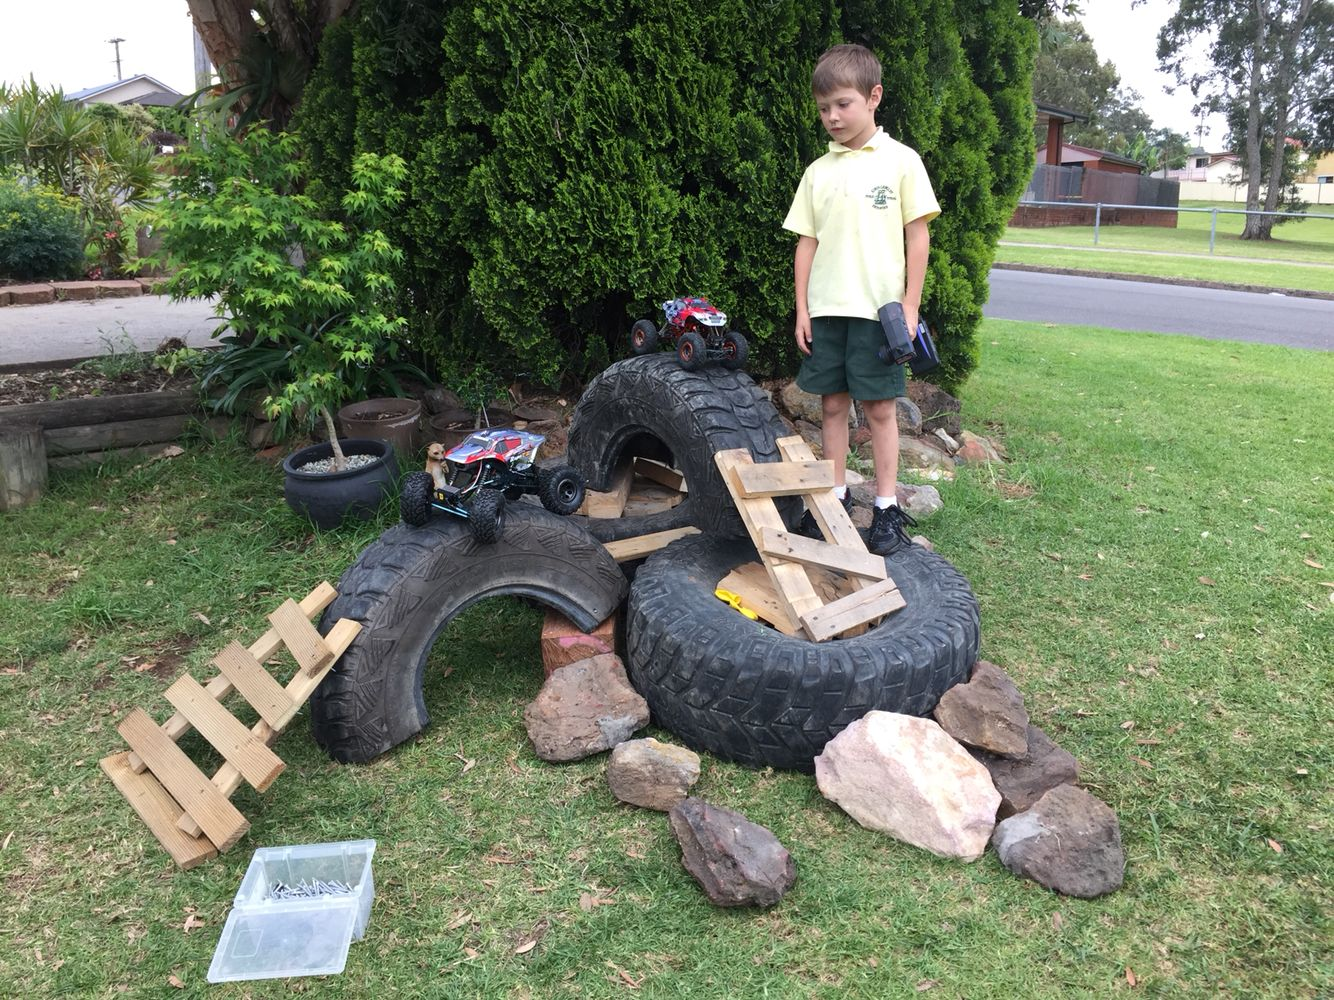 Got some cool little RC rock crawlers, had to build a ...